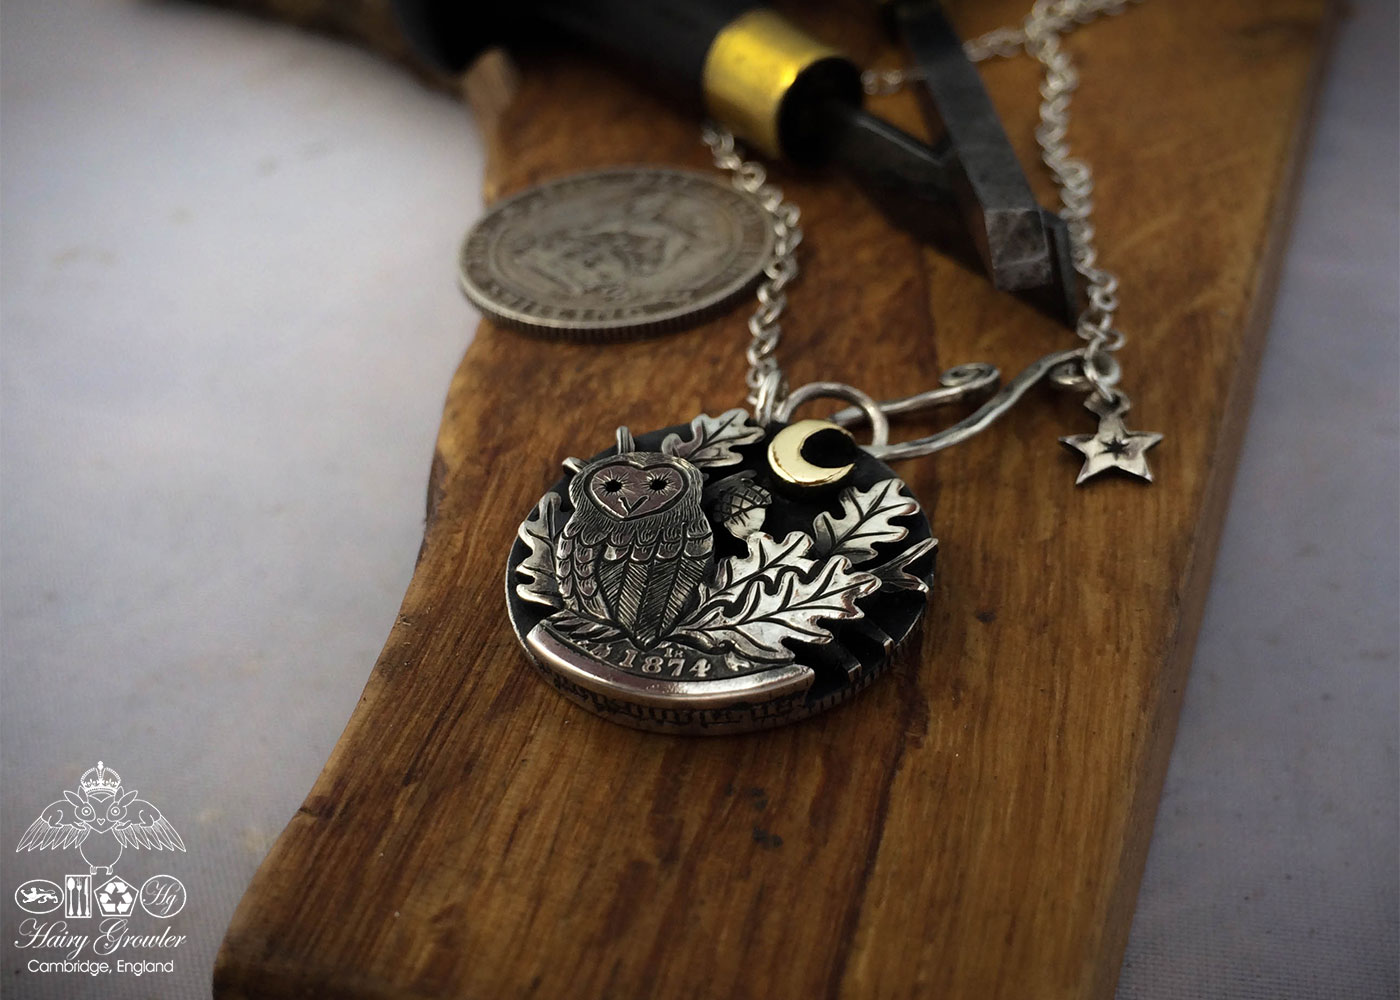 sitting in the moonlight owl necklace handcrafted and recycled from three silver shilling coins all over 100 years old